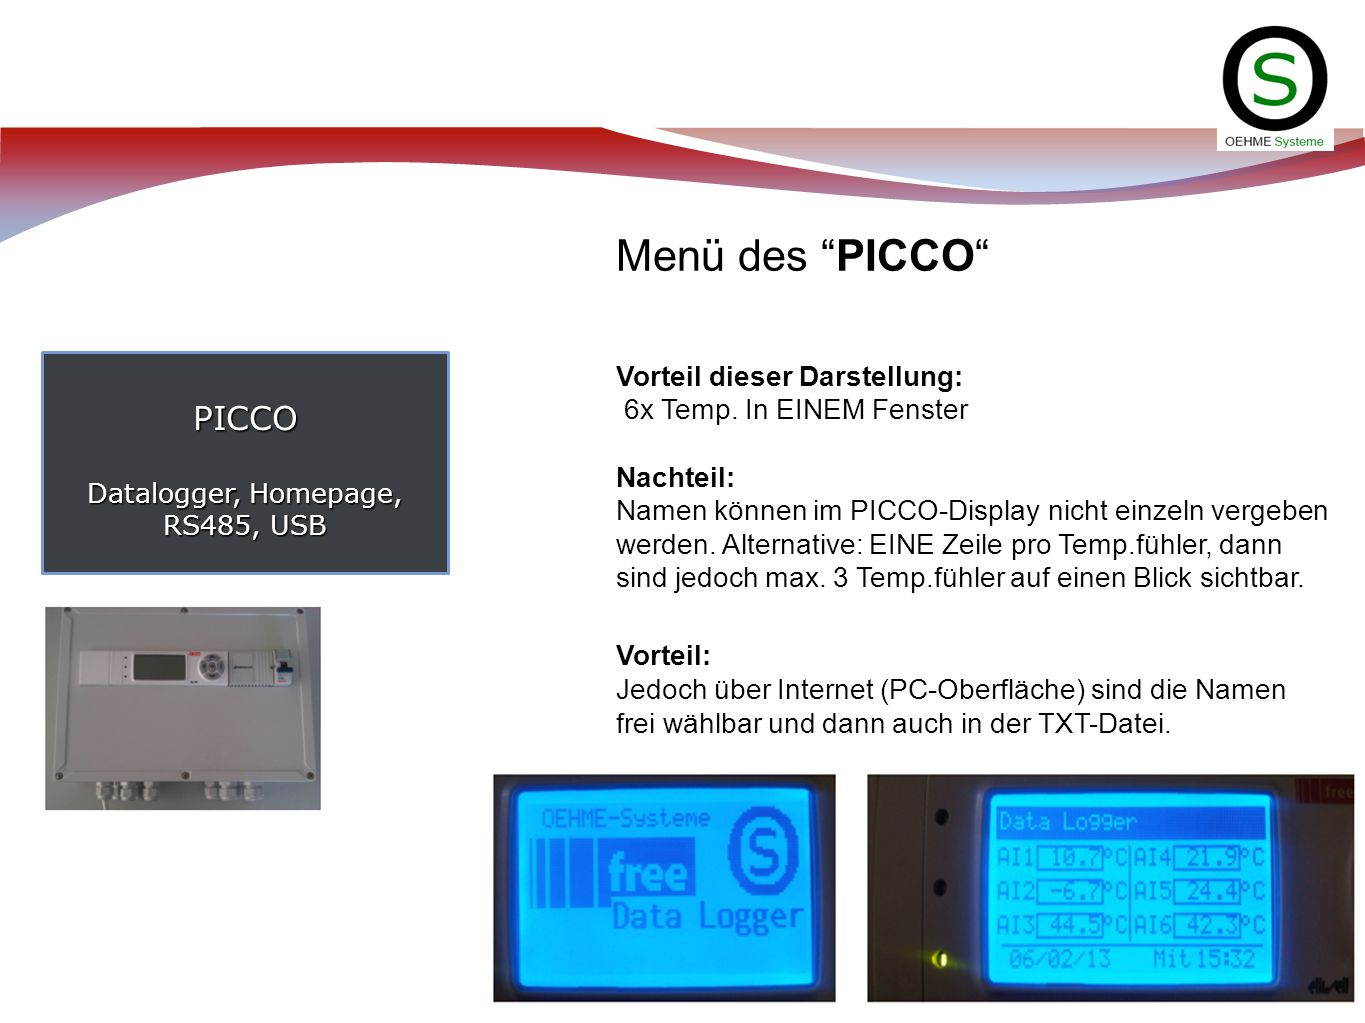 PICCO Datalogger, Homepage, RS485, USB